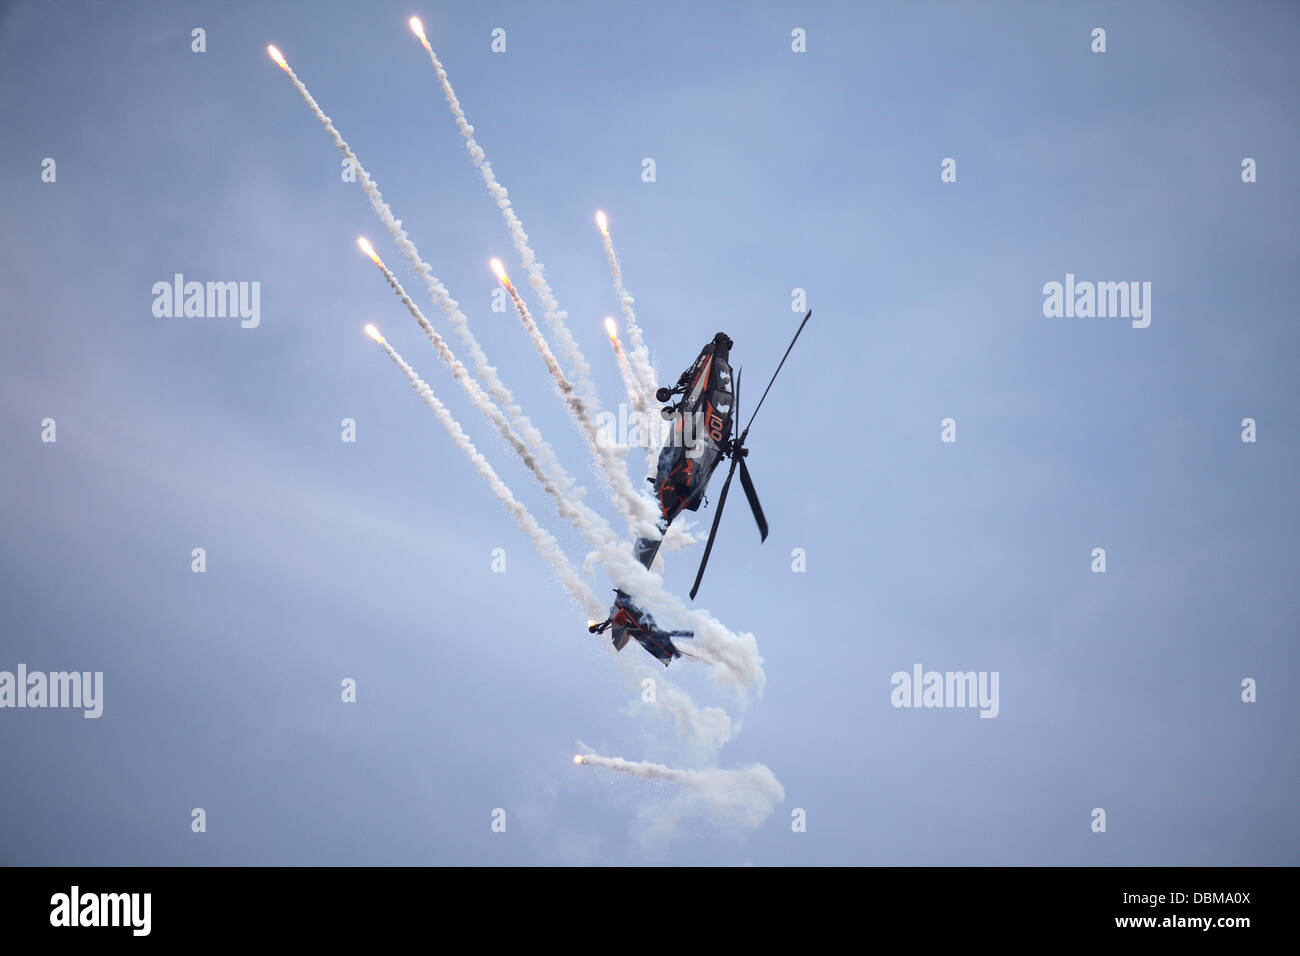 A Royal Netherlands Airforce AH64D Apache attack helicopter demonstrates an evasive manoeuvre - Stock Image